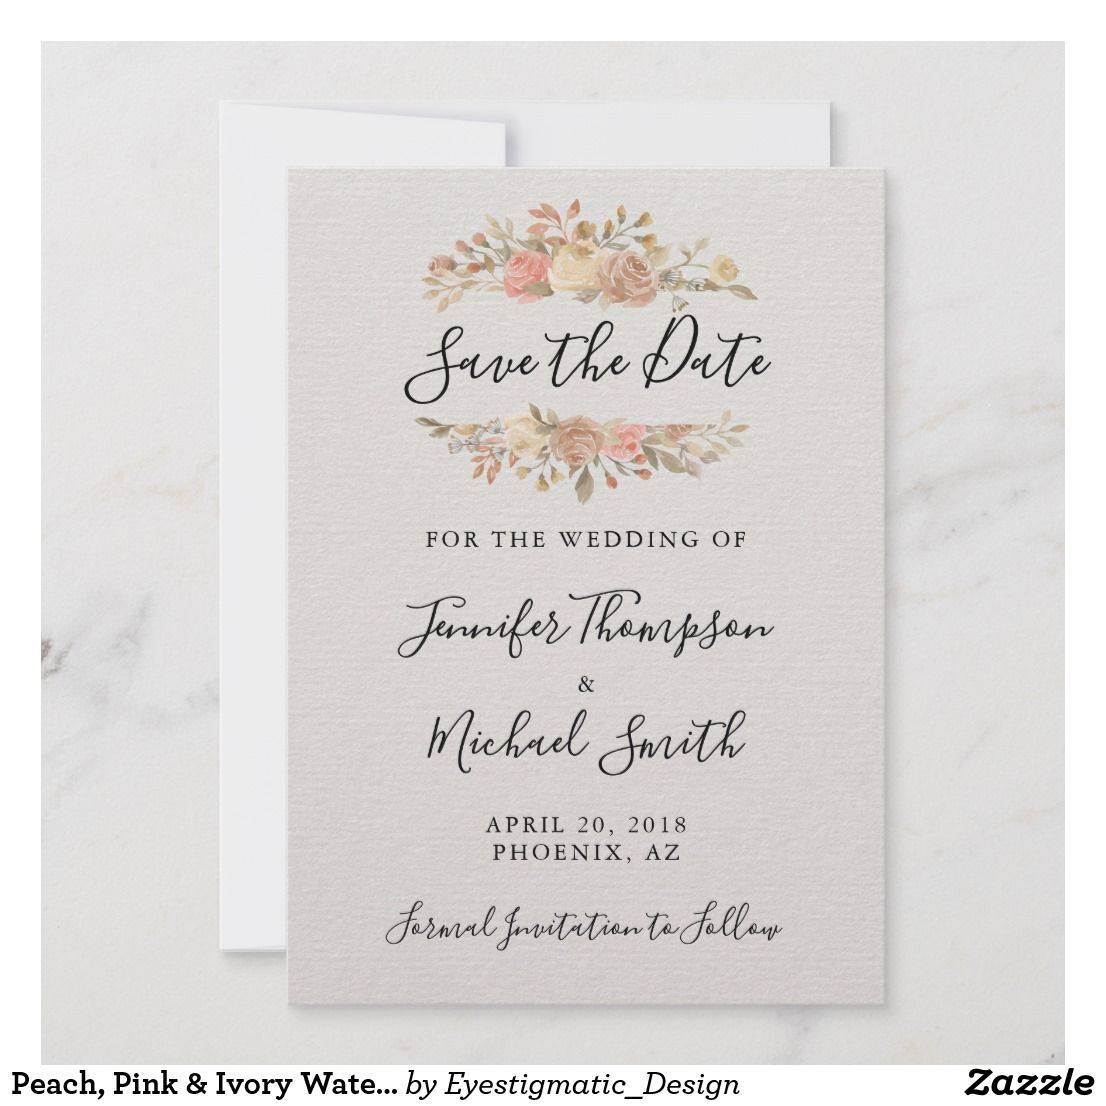 peach pink ivory watercolor save the date card save the date cardswedding wedding invitationssave the date save the date cards save the date magnets